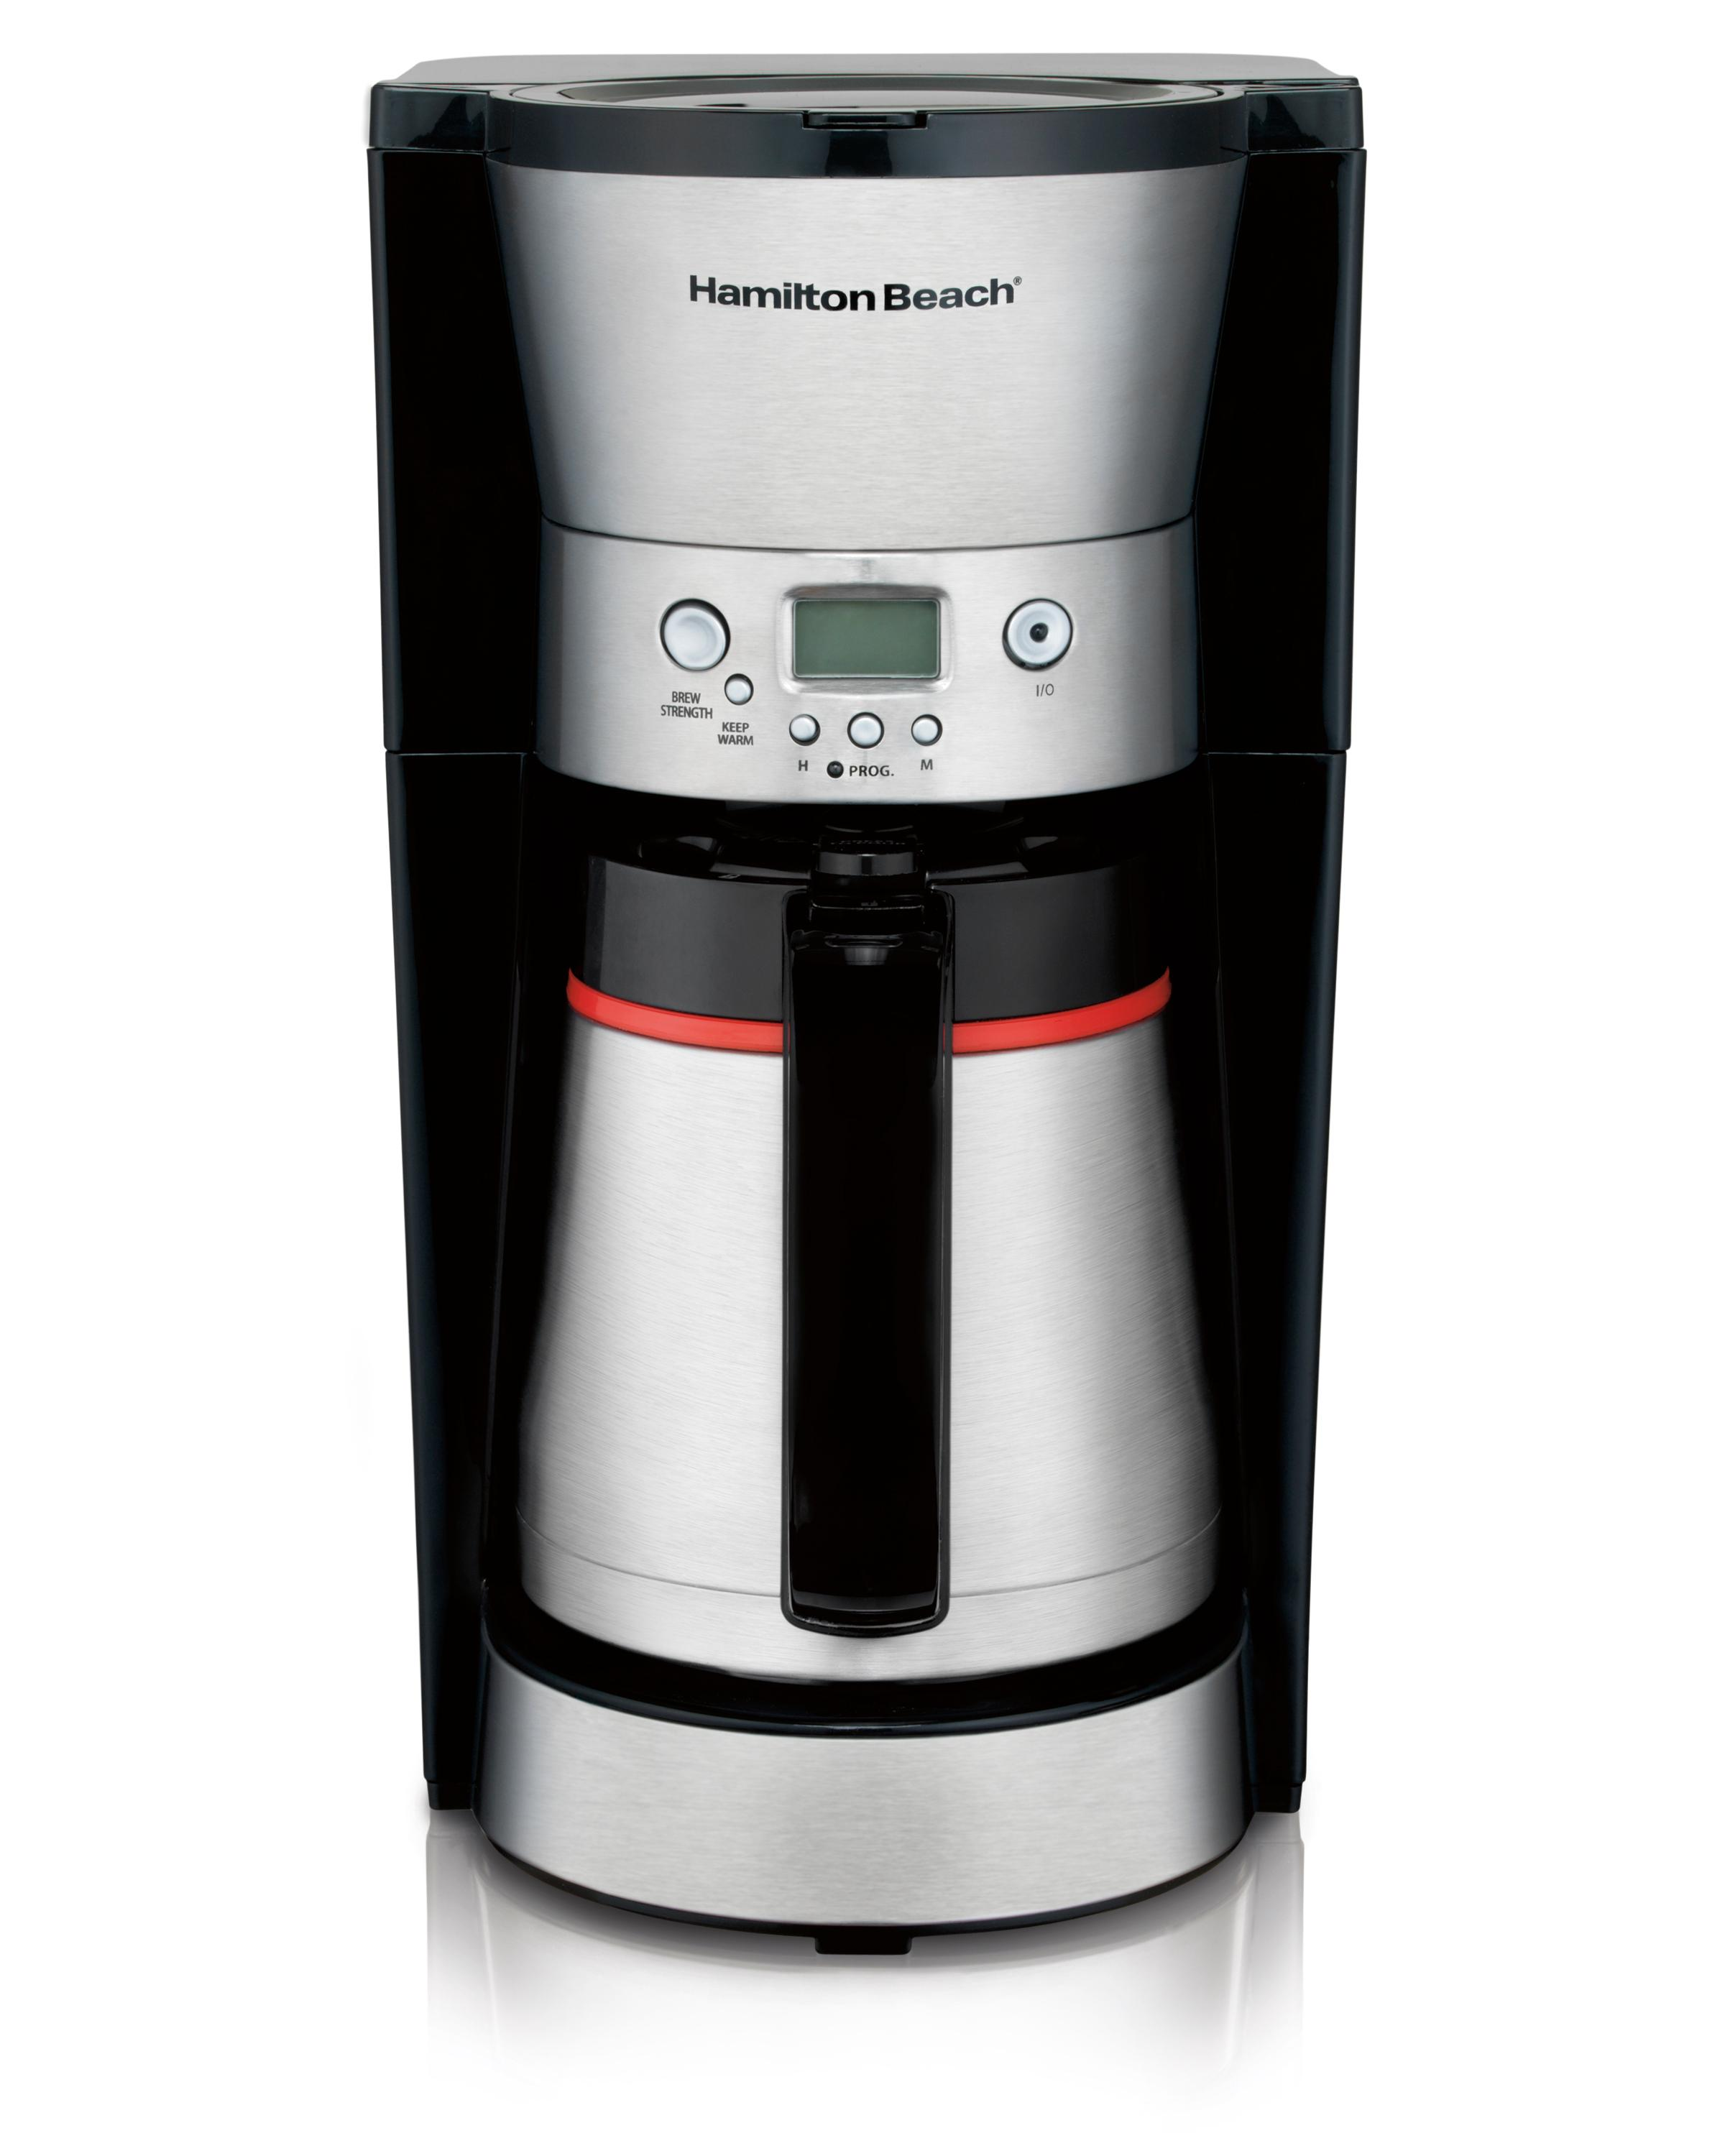 Coffee Maker With Thermal Carafe And Hot Water : Amazon.com: Hamilton Beach 46896A 10 Cup Coffee Maker with Vacuum Stainless Thermal Carafe ...